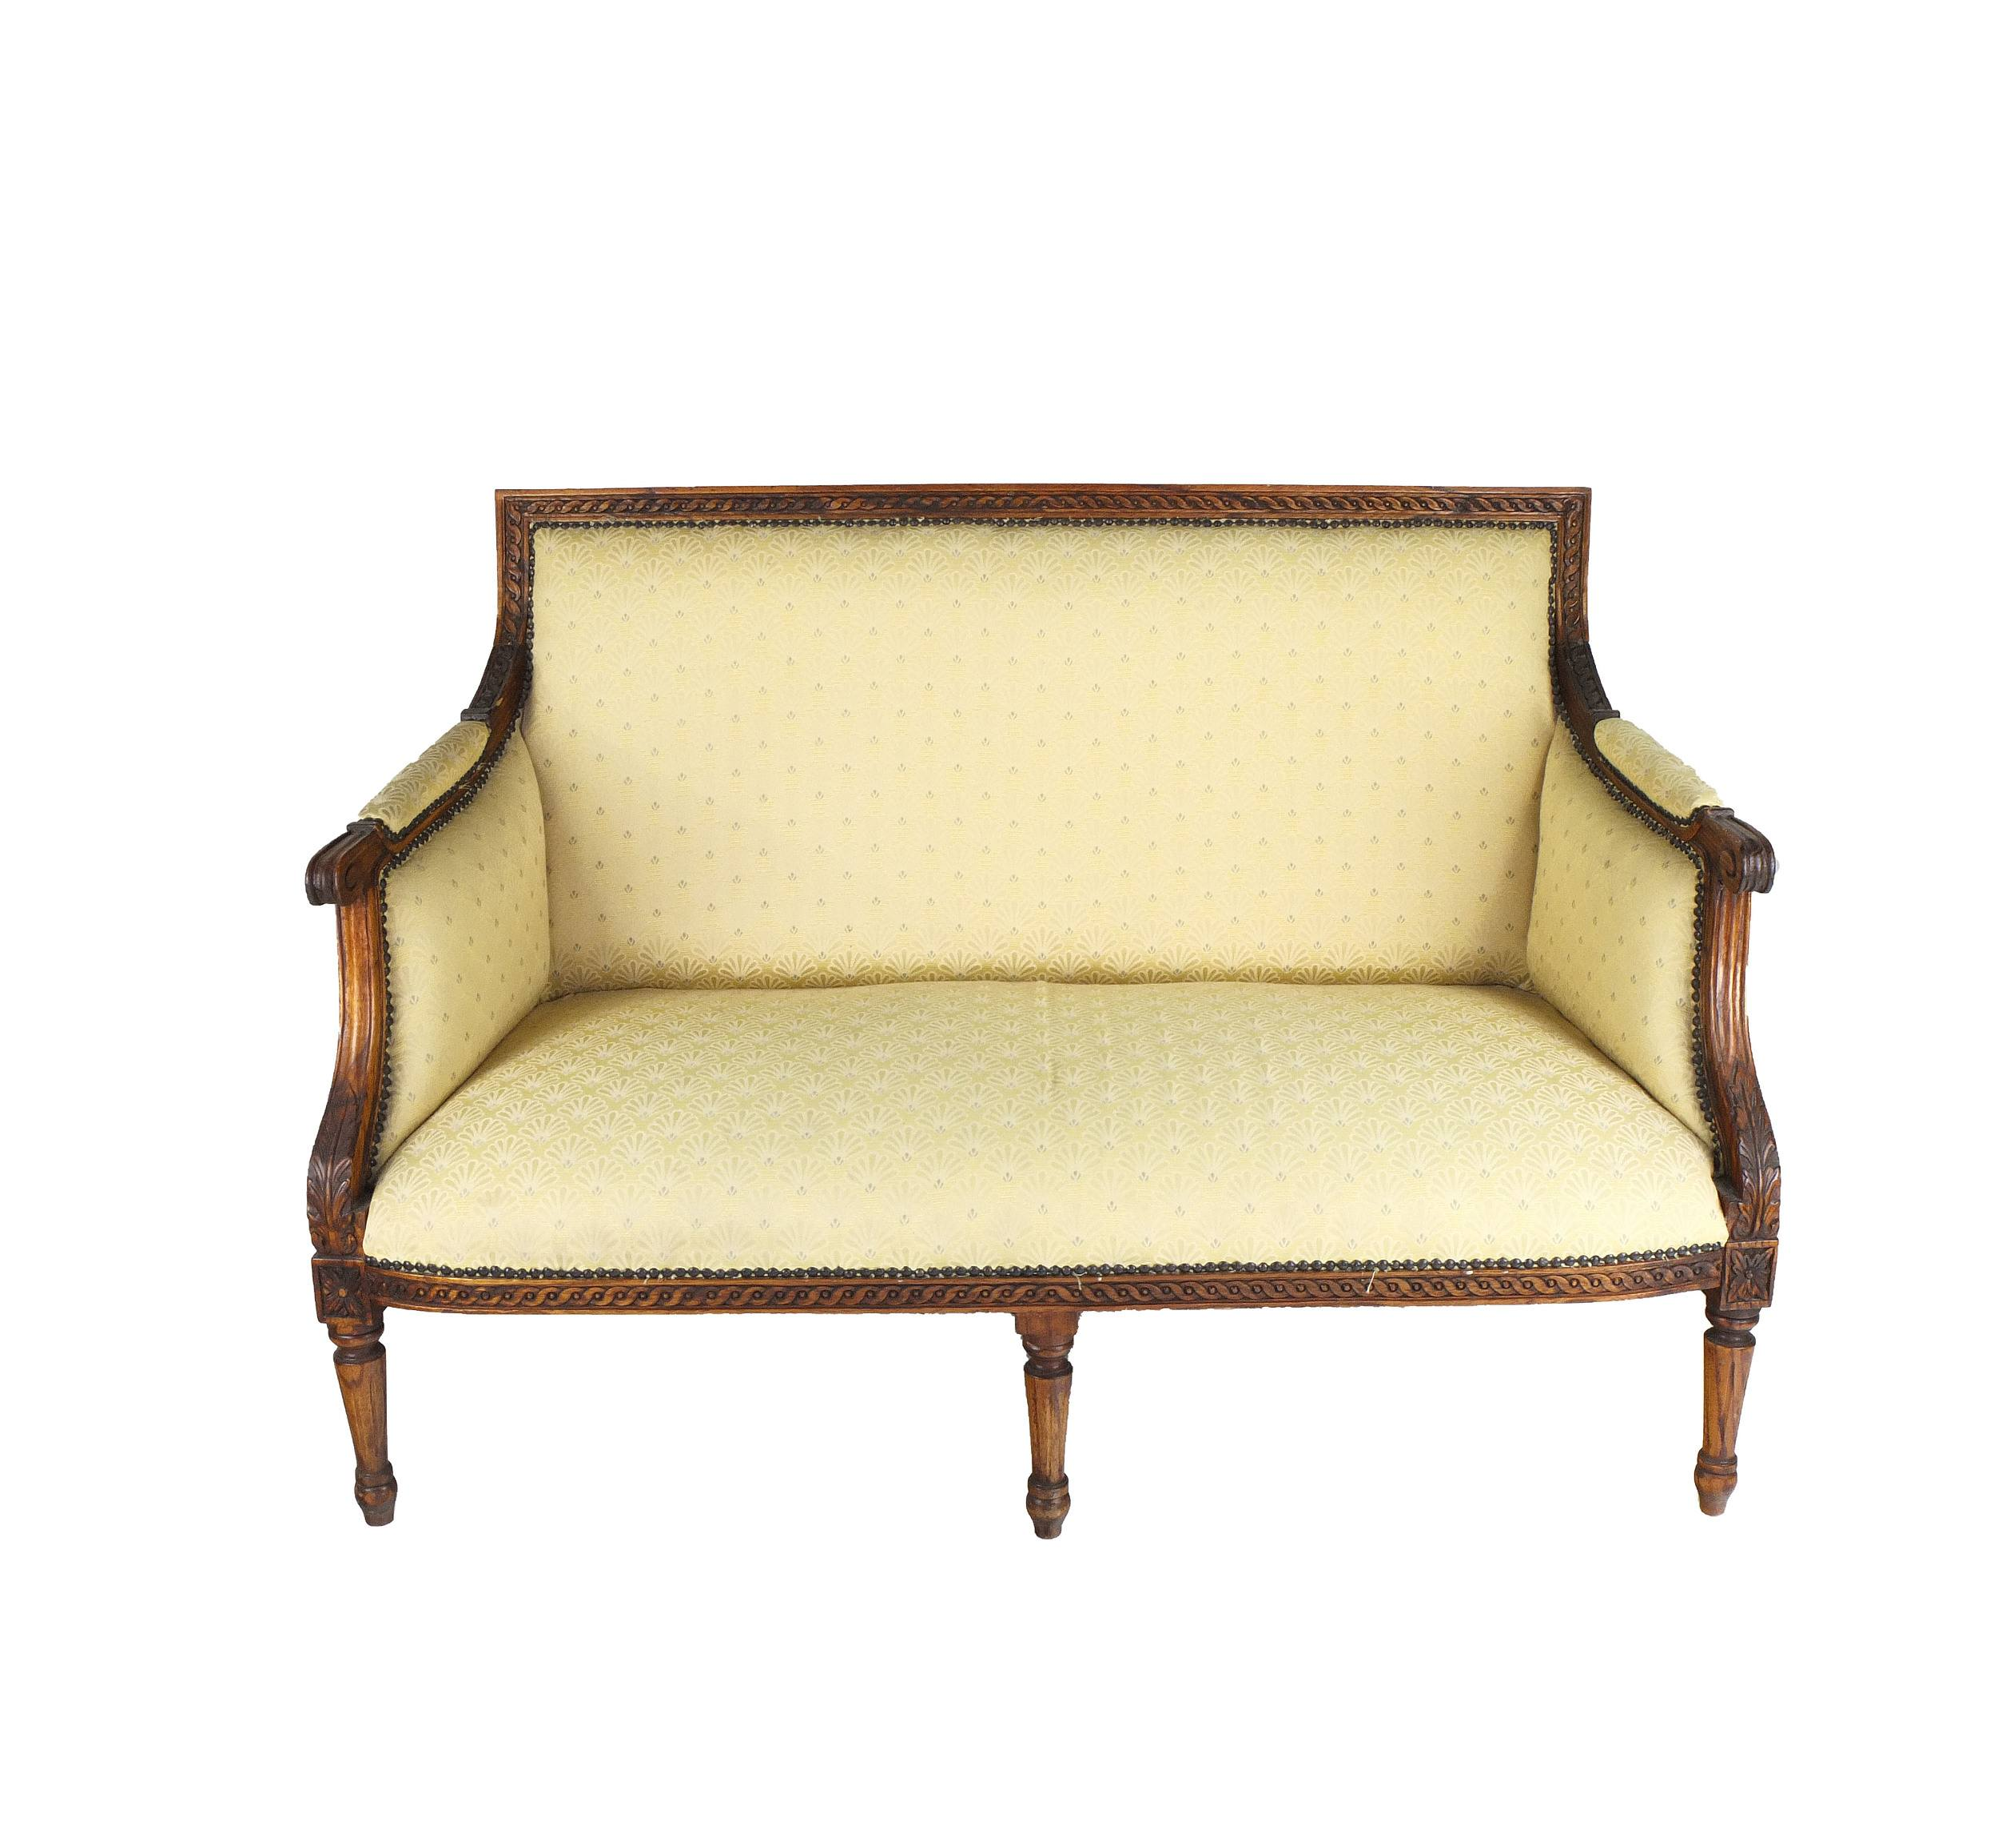 'French Louis Style Finely Carved Oak Settee Early 20th Century'